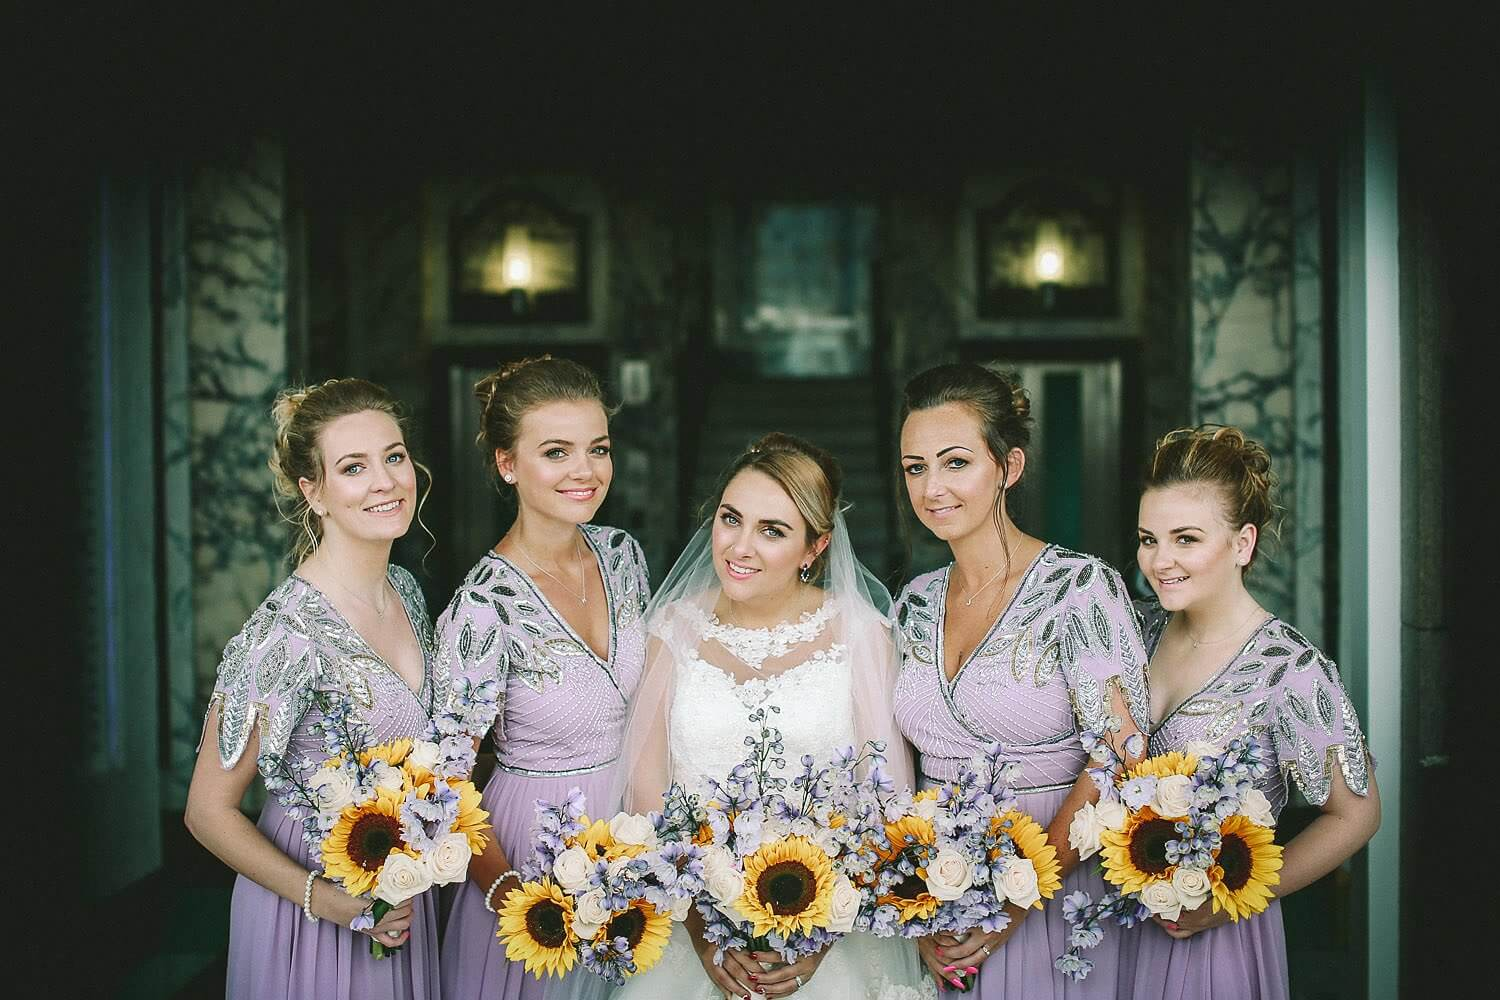 Bridesmaids and sunflowers Royal Liver Building wedding photography